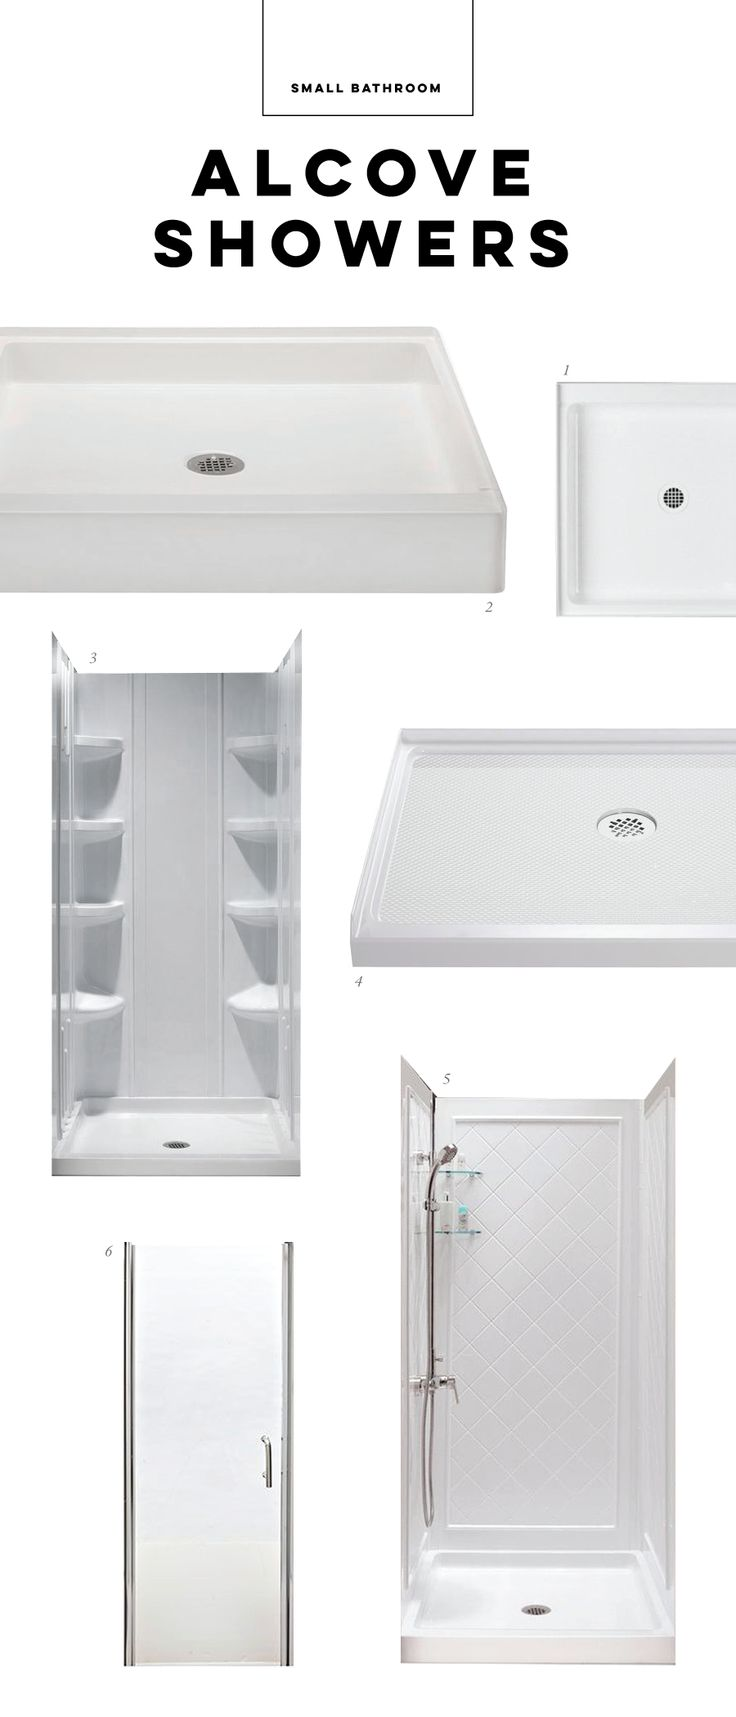 10 Best Small Bath Alcove Showers Images On Pinterest